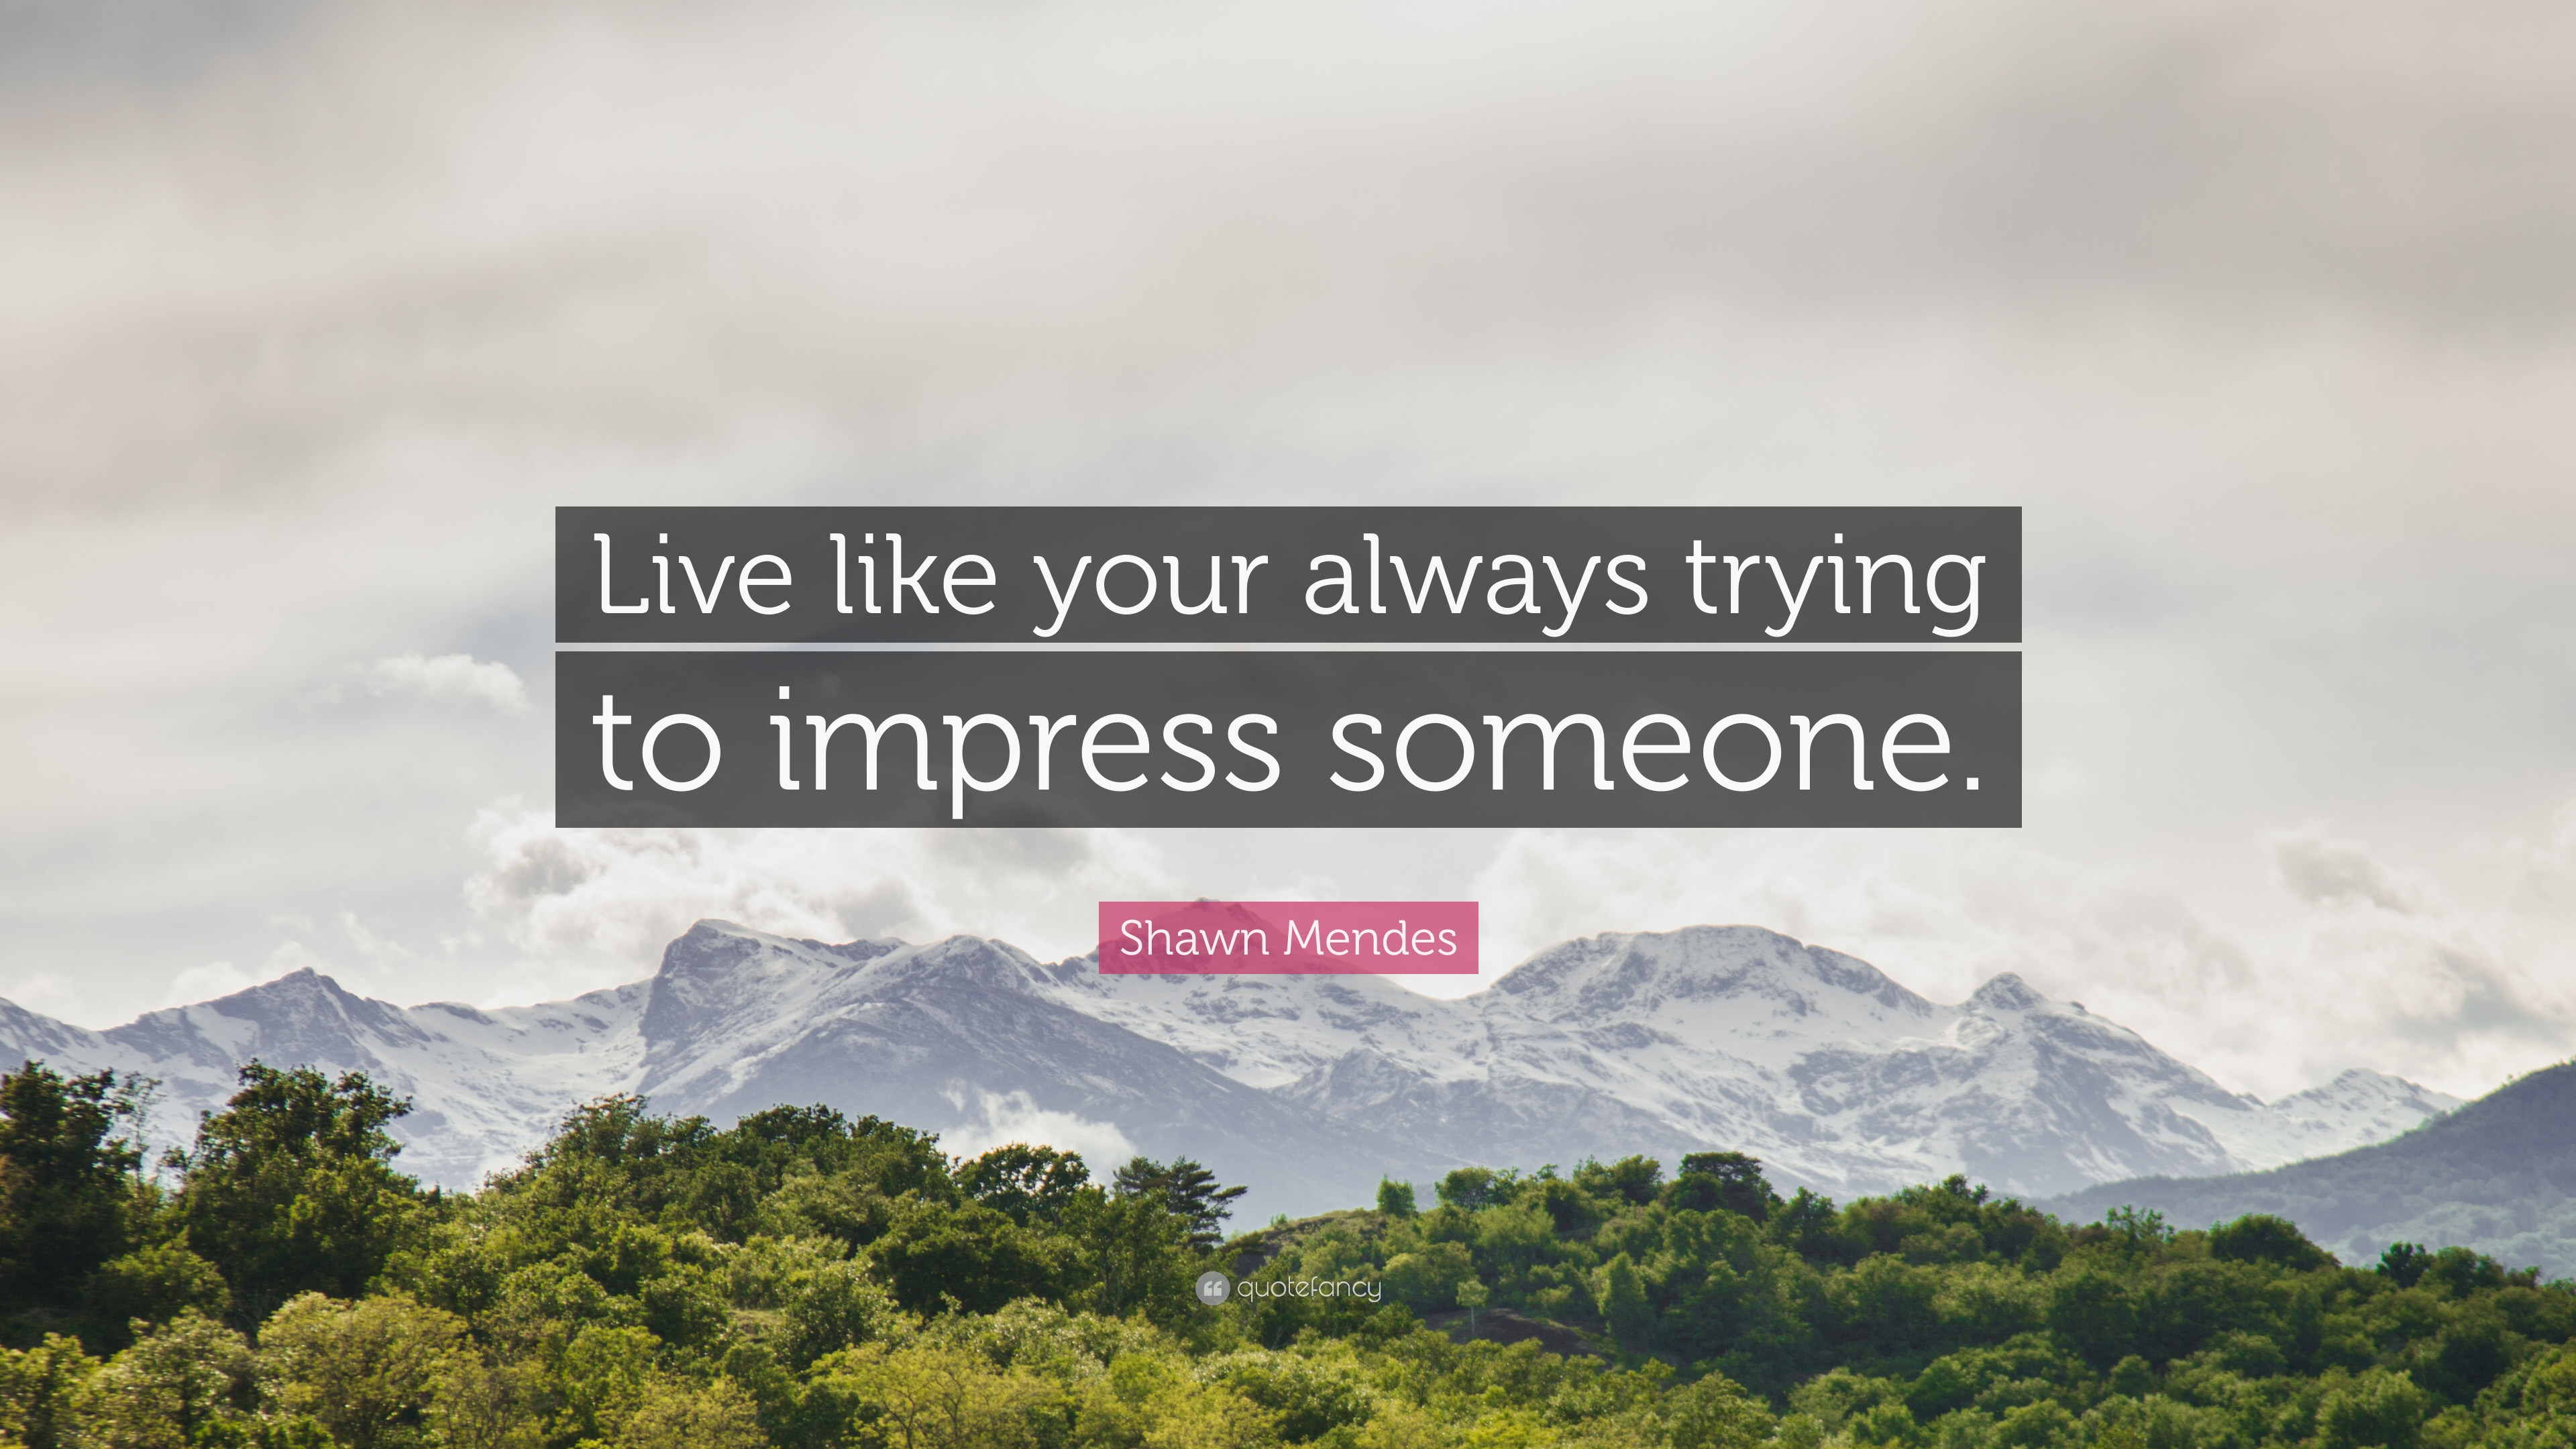 Shawn Mendes Quote Live Like Your Always Trying To Impress Someone